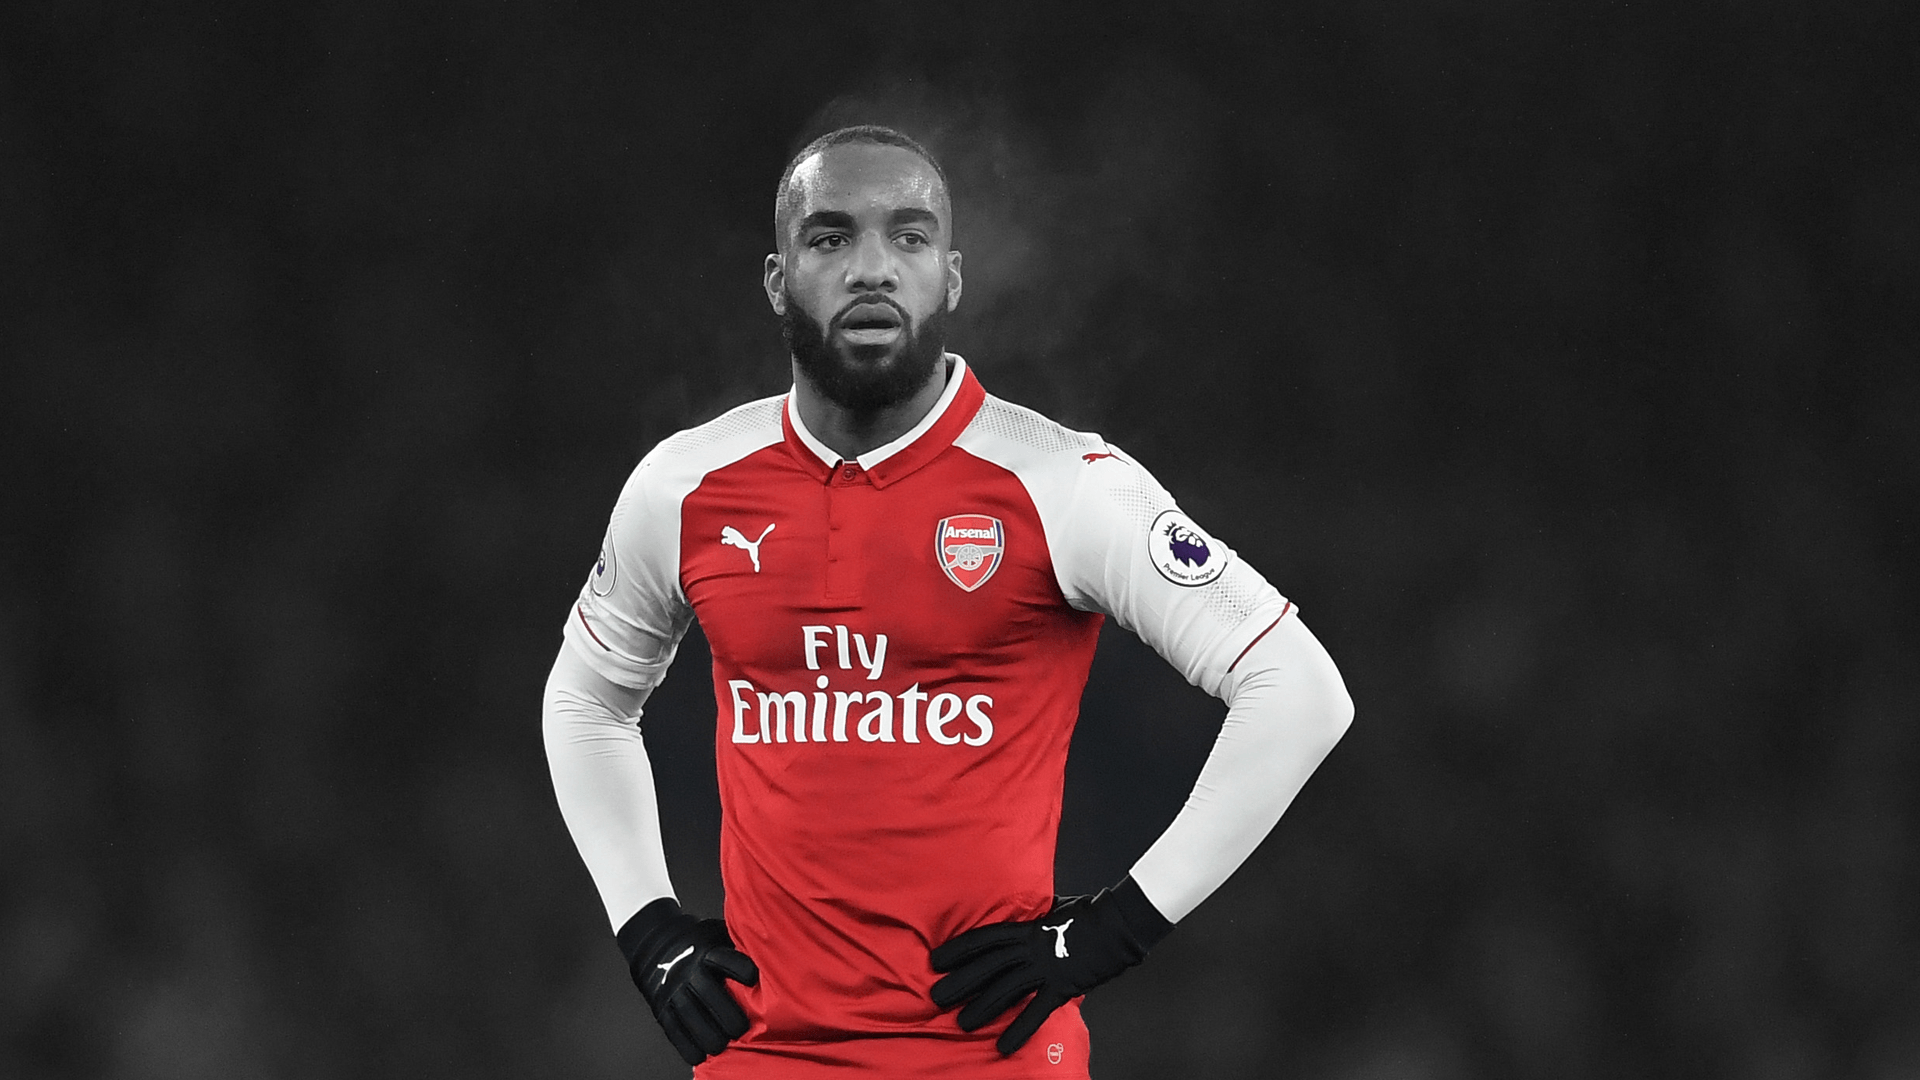 Alexandre Lacazette Wallpapers Wallpaper Cave